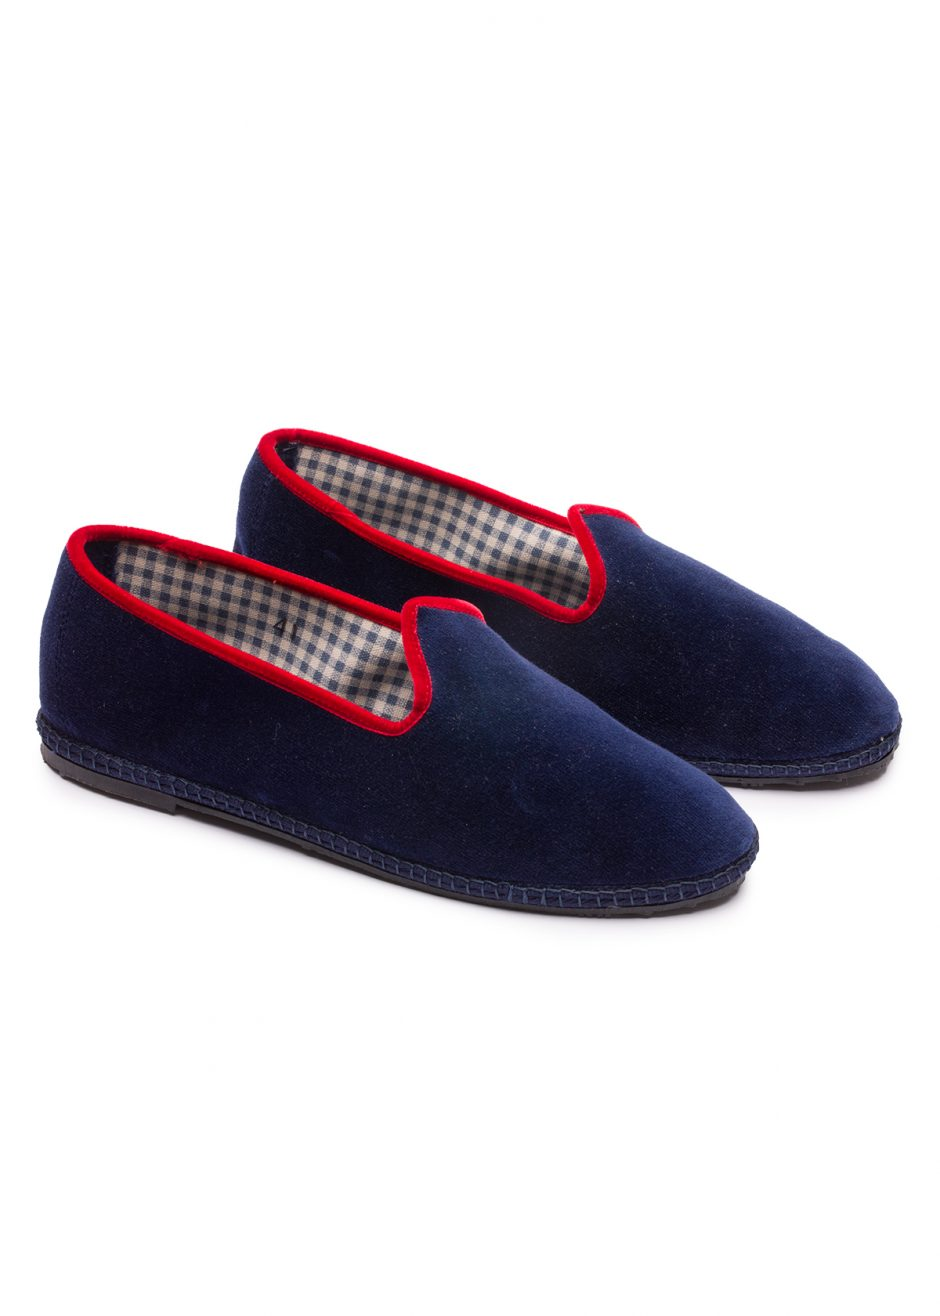 Gatsby – Furlana blue velvet with red profile